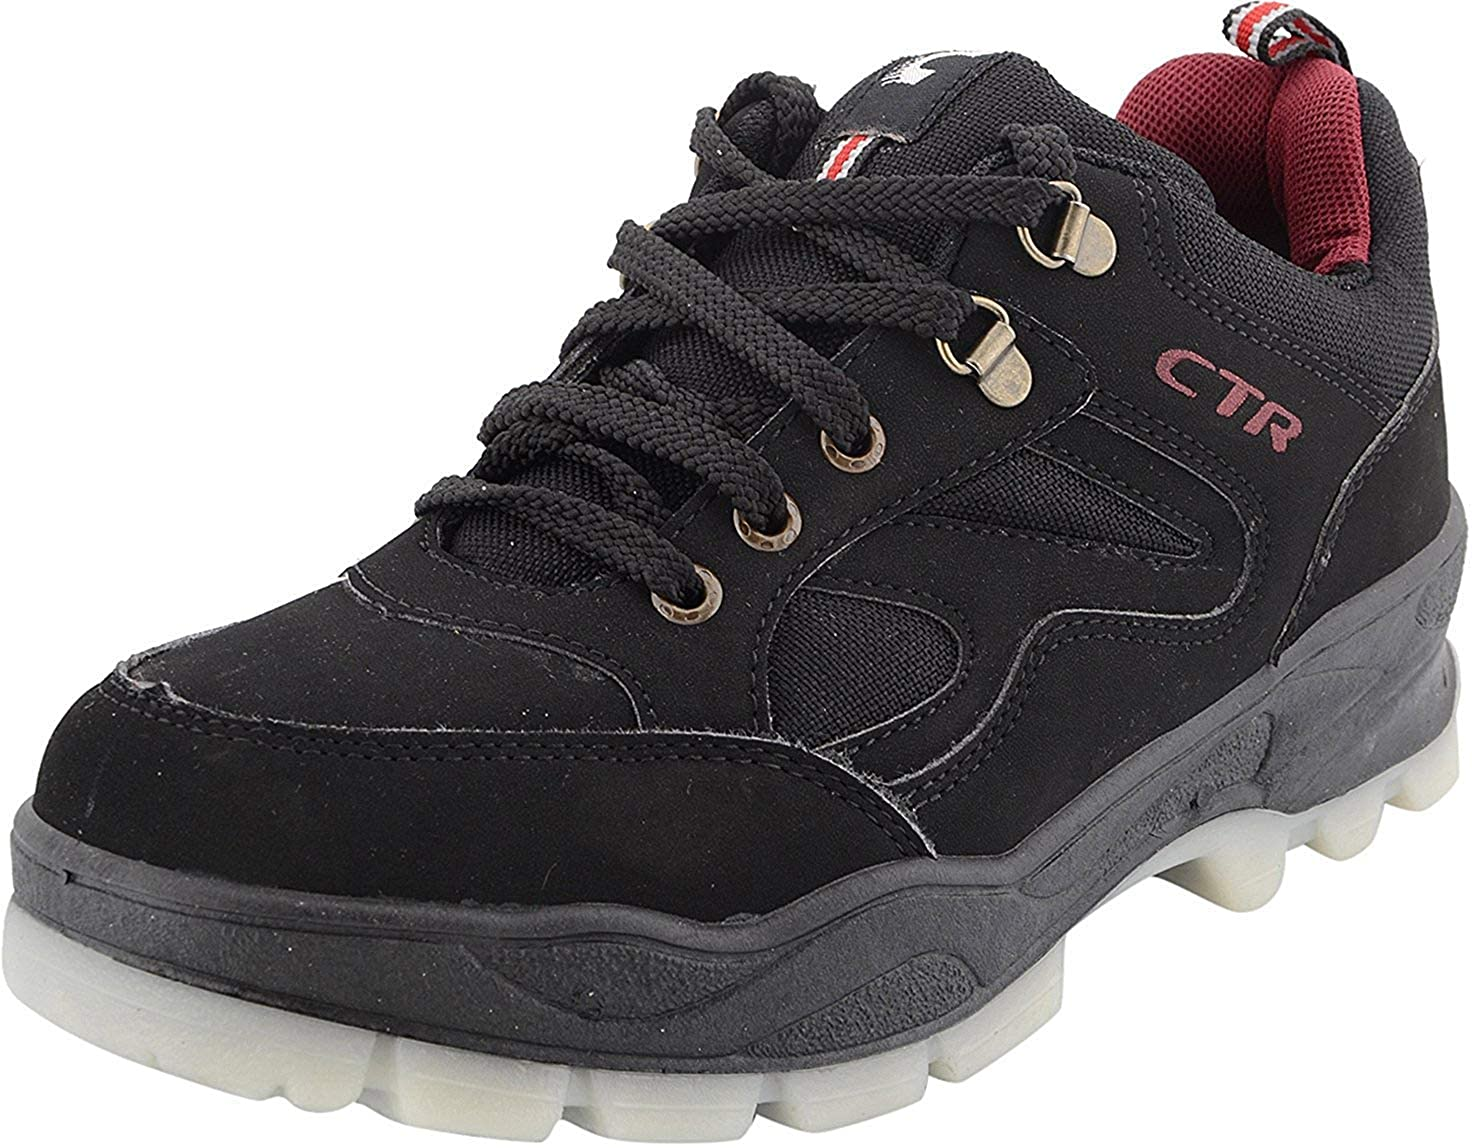 794fb6ec78ac Add-Gear CTR Trekking Shoes Anti-Skid Hiking Shoes Slip Resistant Mountain  Boots in Action Trekking Black  Buy Online at Low Prices in India -  Amazon.in